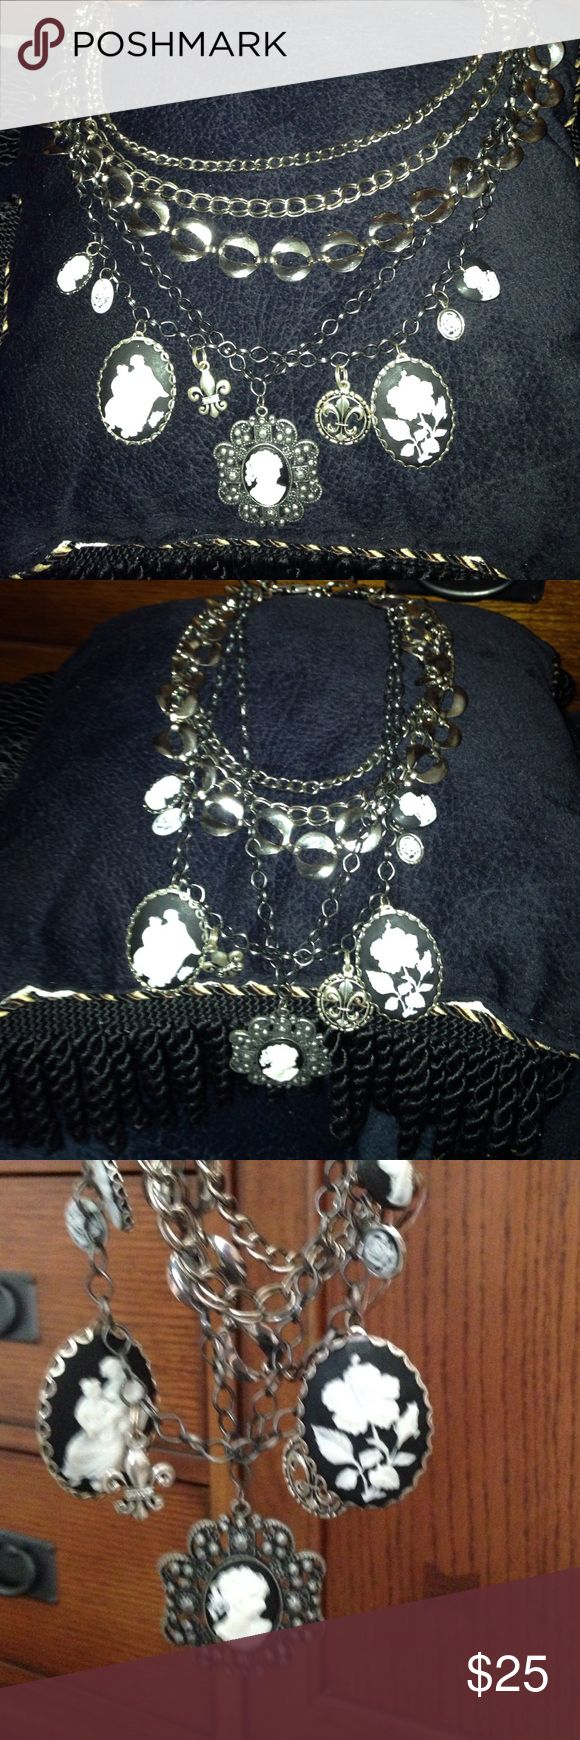 Cameos and chunky chain necklace! Black and white cameos and fleur di Lis charm necklace.  One of a kind handmade boho gypsy creation from my cameo collection. Jewelry Necklaces